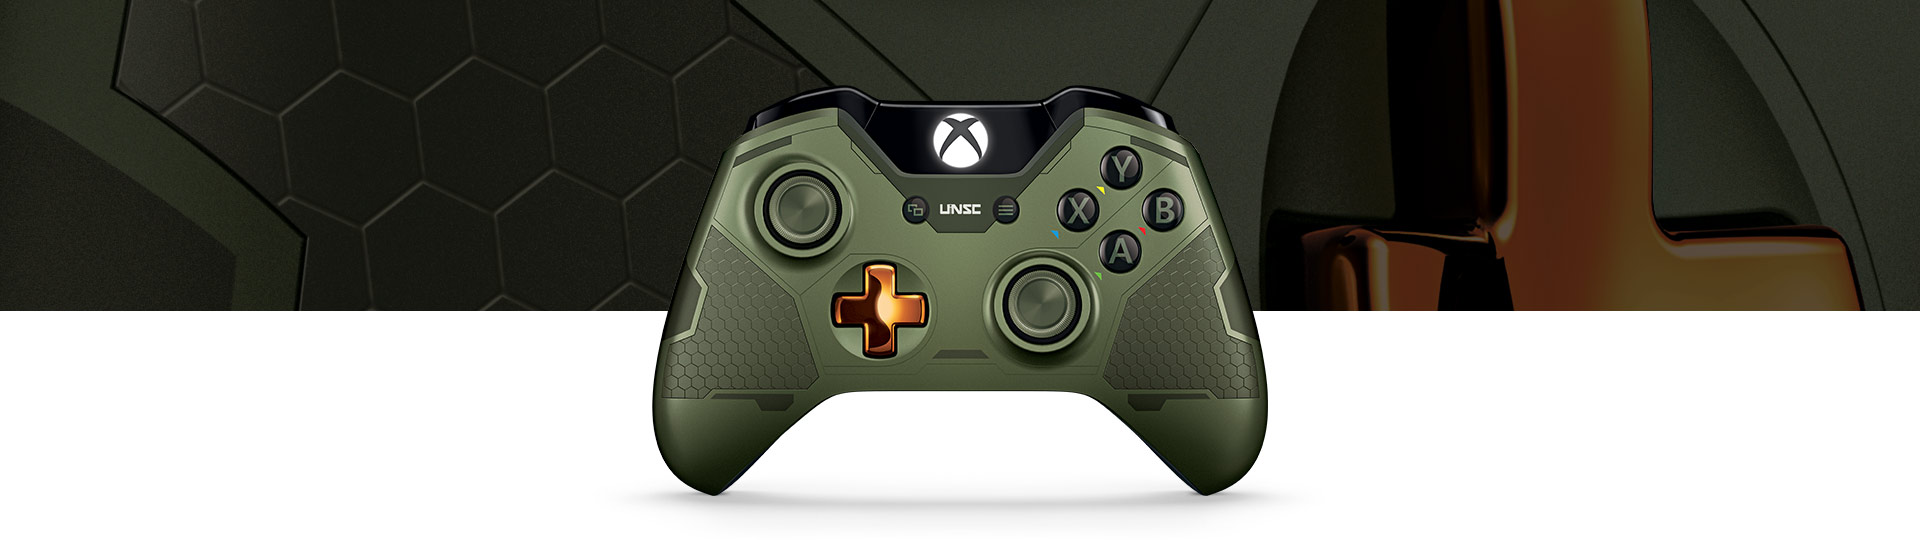 Comando Sem Fios Xbox One Halo 5: Guardians - the Master Chief Limited Edition